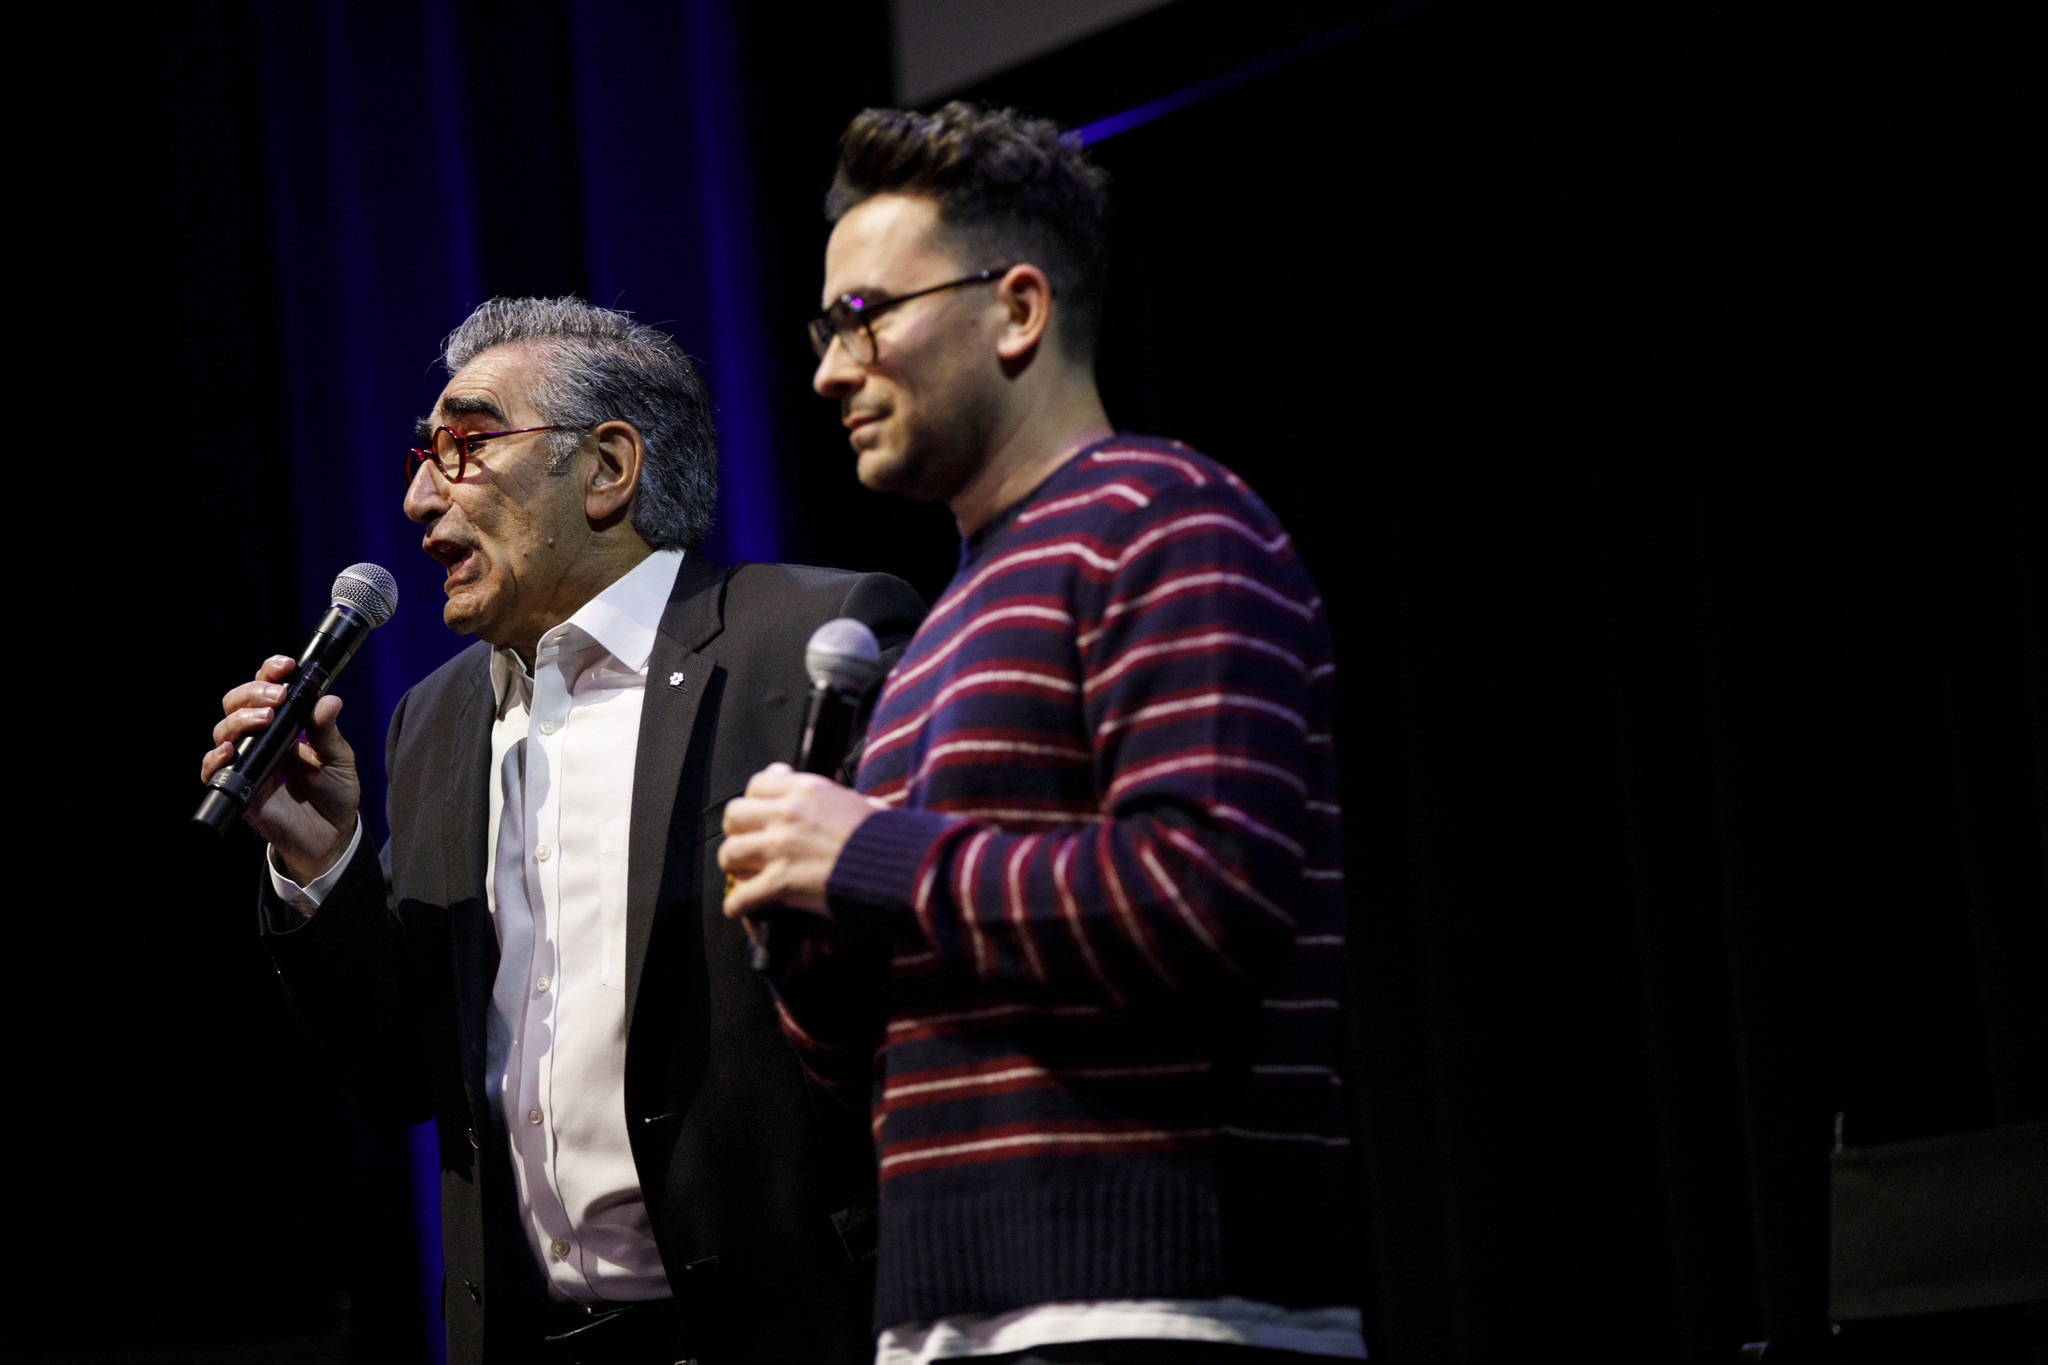 Actors Eugene Levy and Dan Levy speak during Schitt's Creek Live at the theatre at the Ace Hotel on